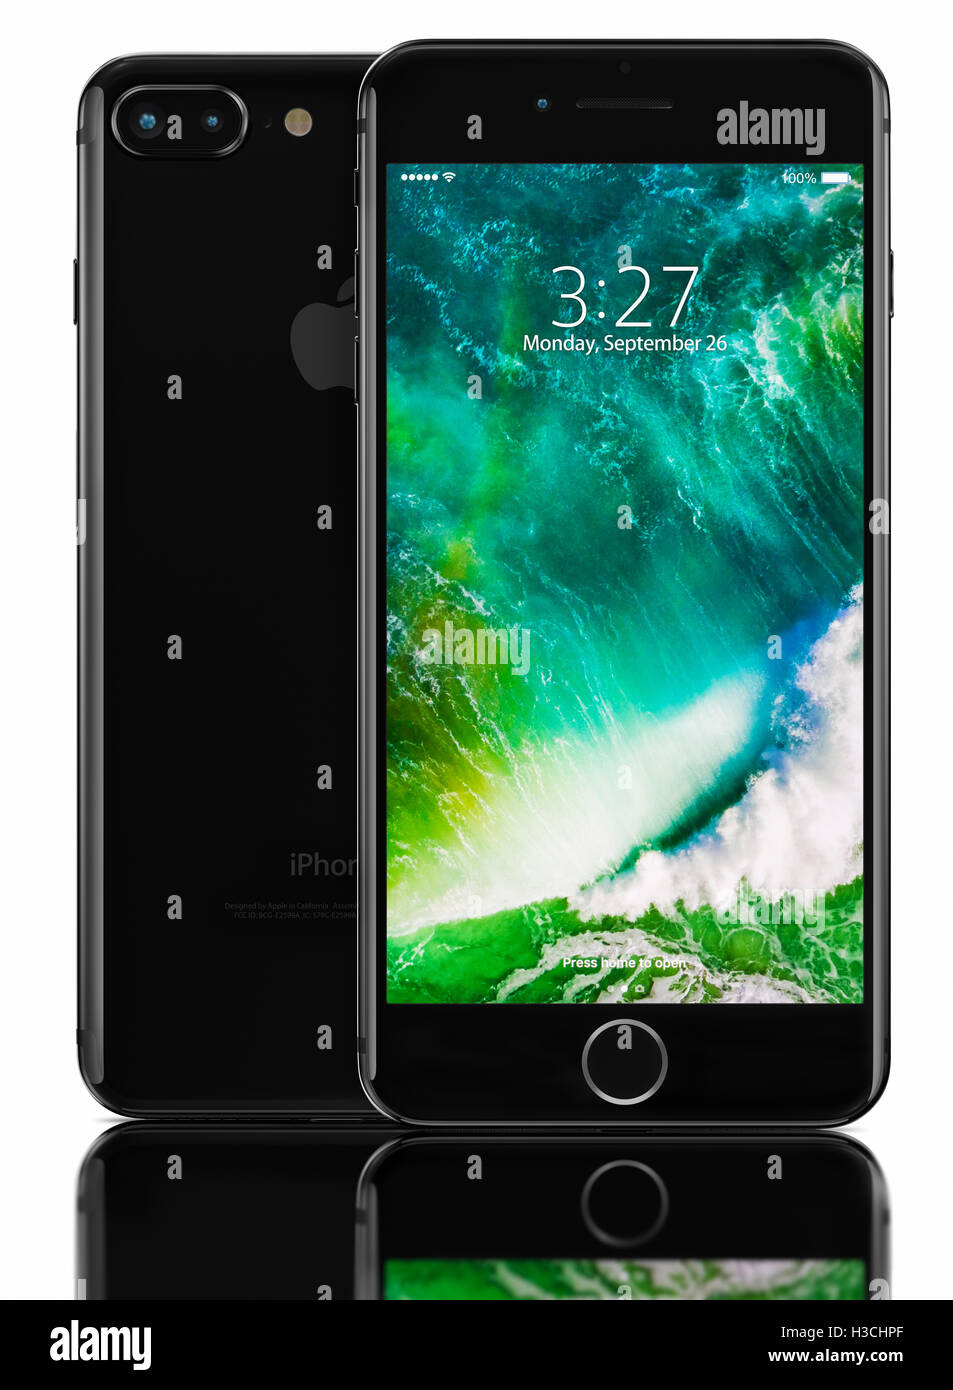 Best Wallpapers For Iphone 7 Plus Jet Black The Best Hd Wallpaper